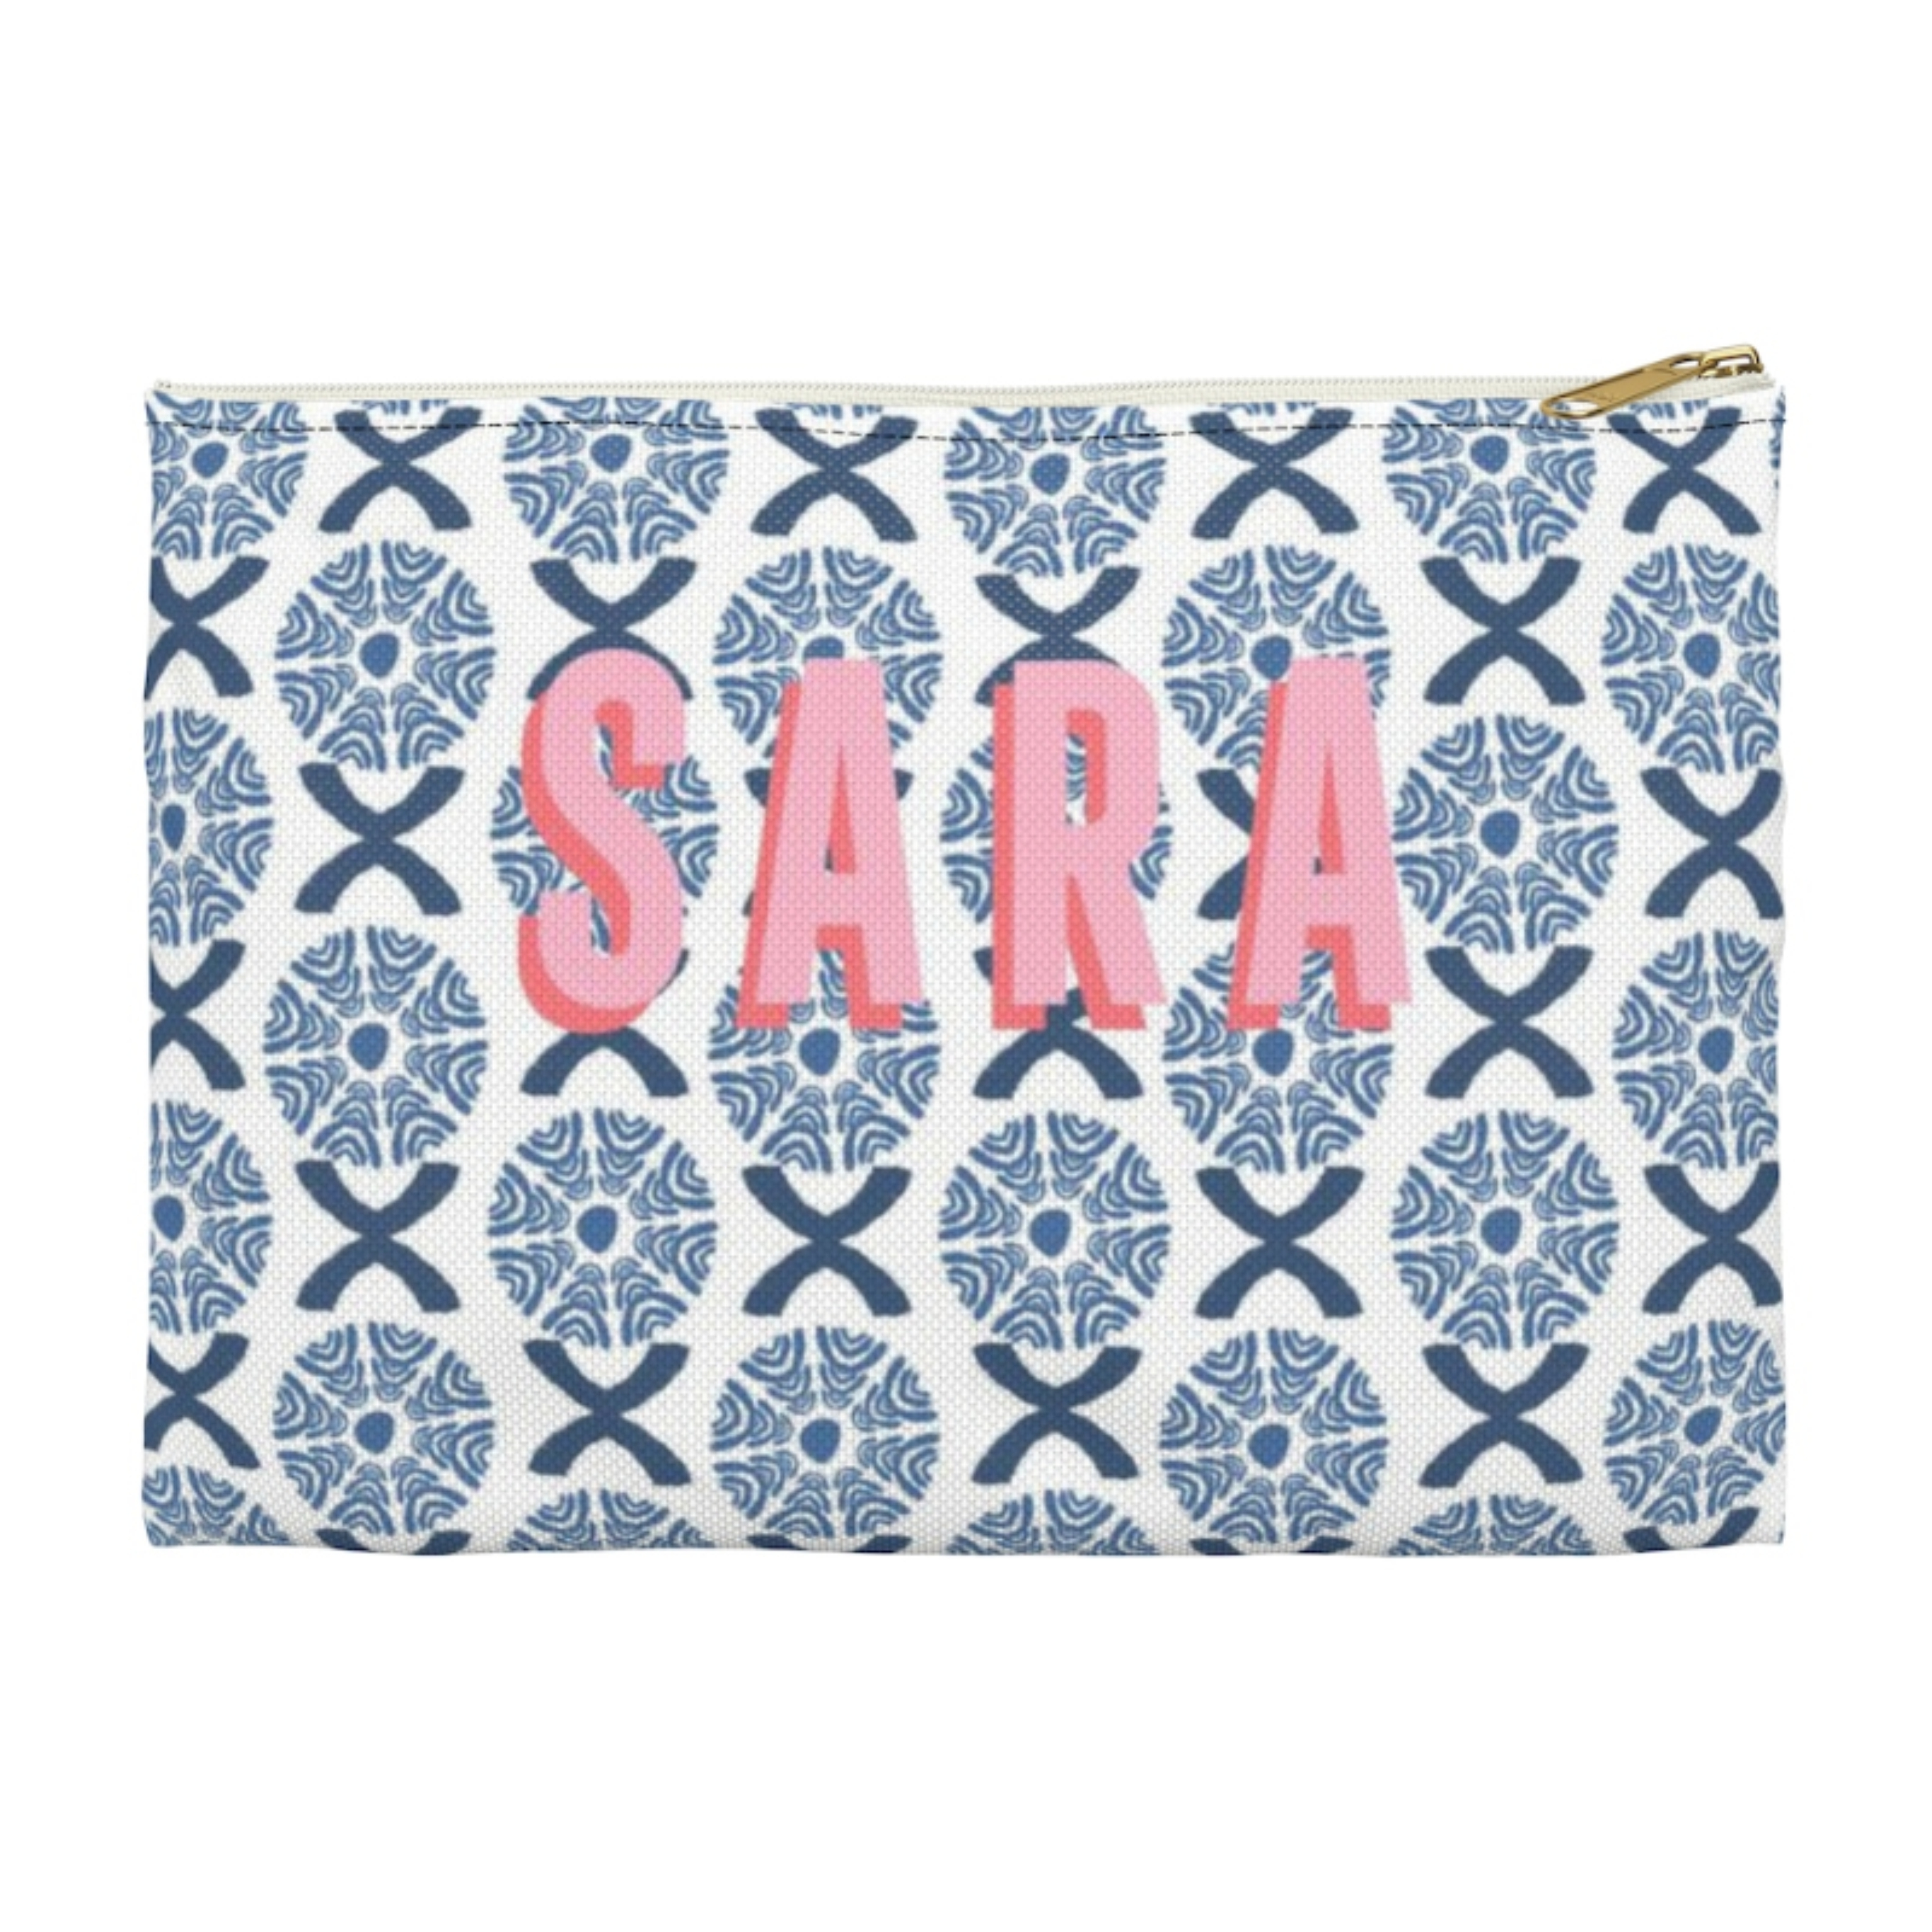 Monogrammed Camille Blue Clutch - 2 Sizes Available